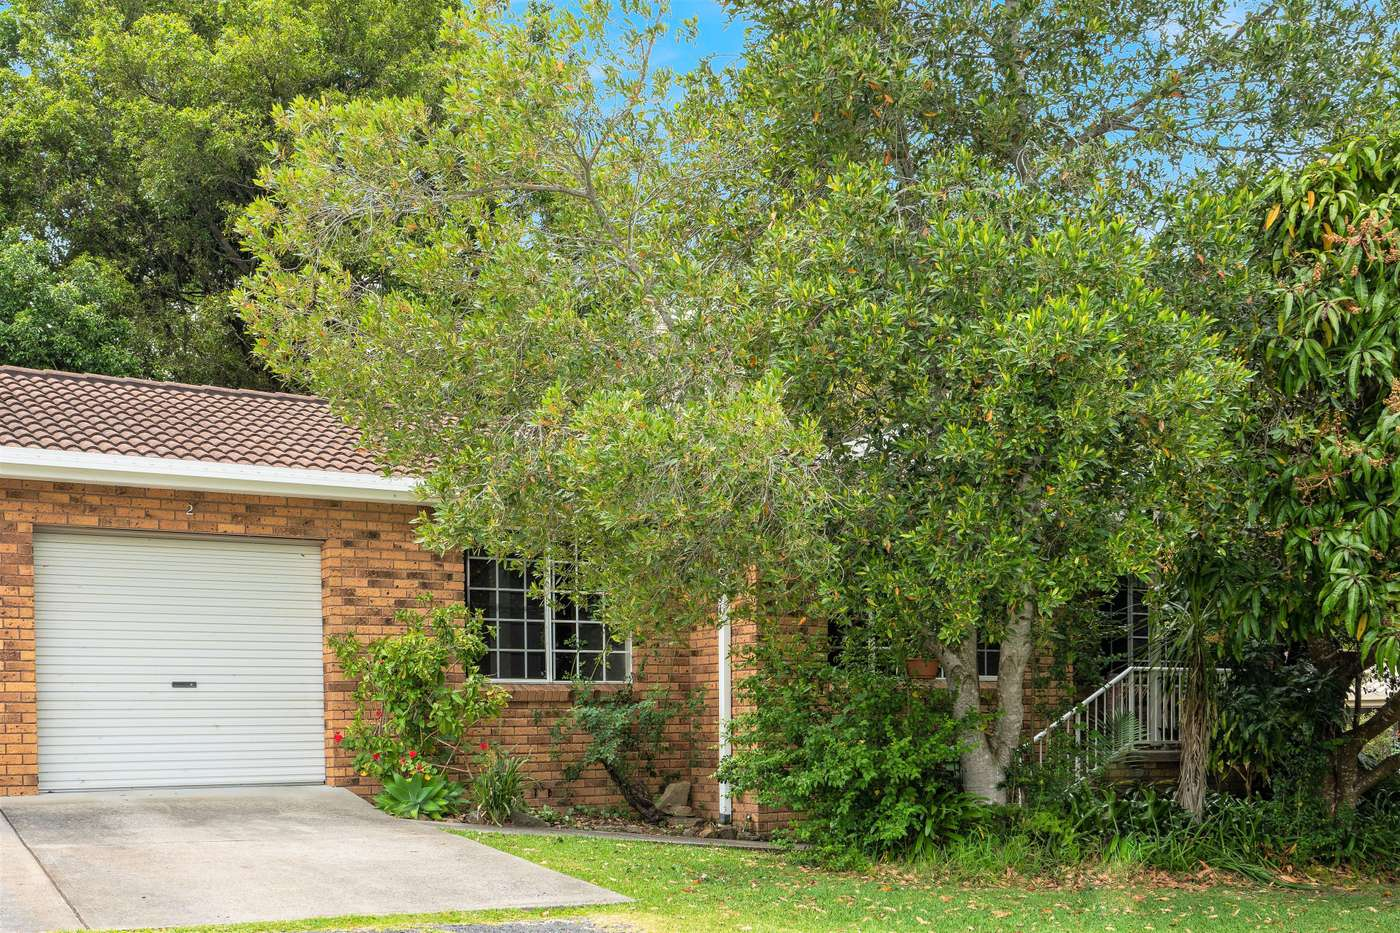 Main view of Homely townhouse listing, 2/56 Patrick Crescent, Saratoga, NSW 2251